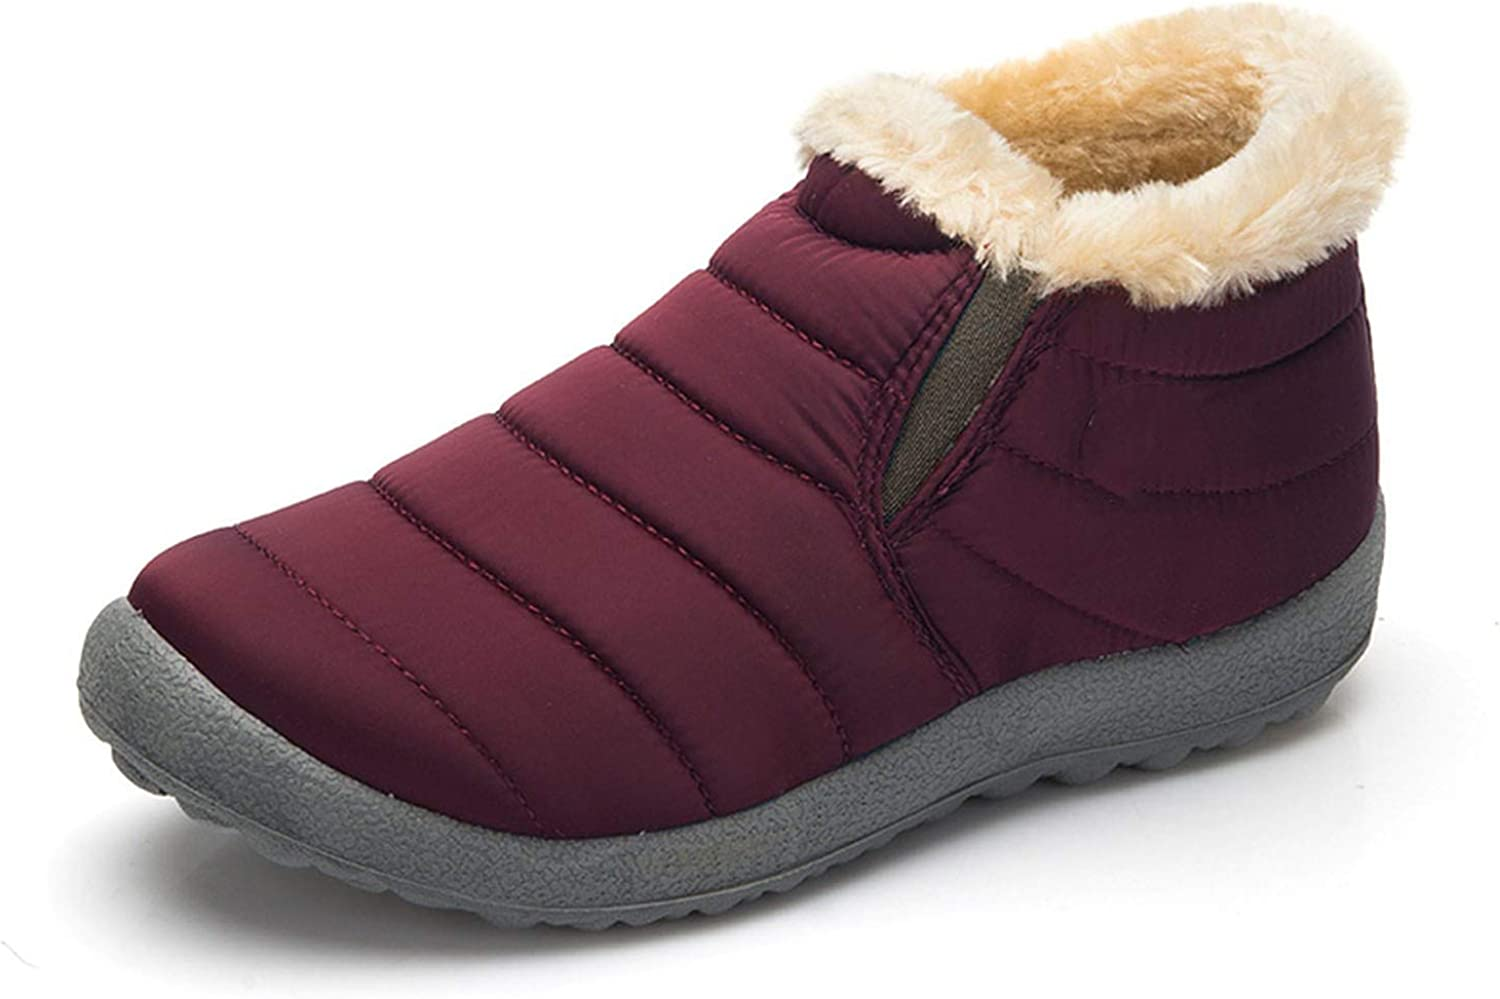 Don't mention the past Size35-48 Waterproof Women Winter shoes Couple Unisex Snow Boots Warm Fur Inside Antiskid Warm Boots